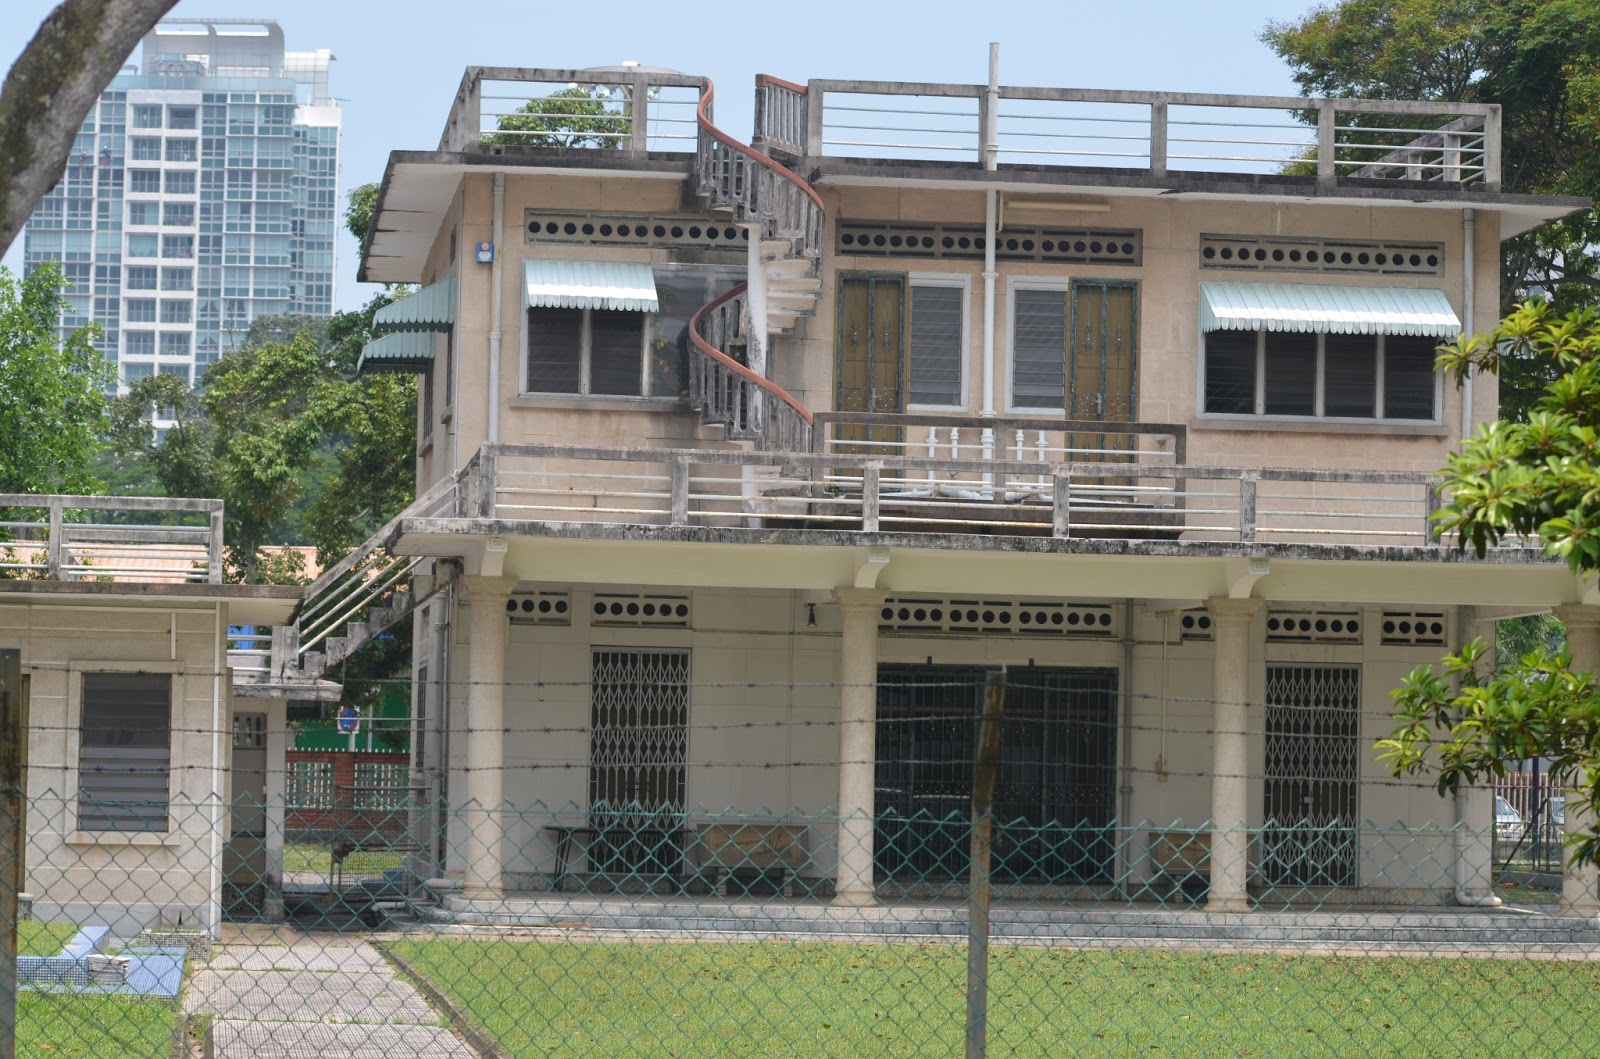 g h o s t club sg abandoned houses part 2